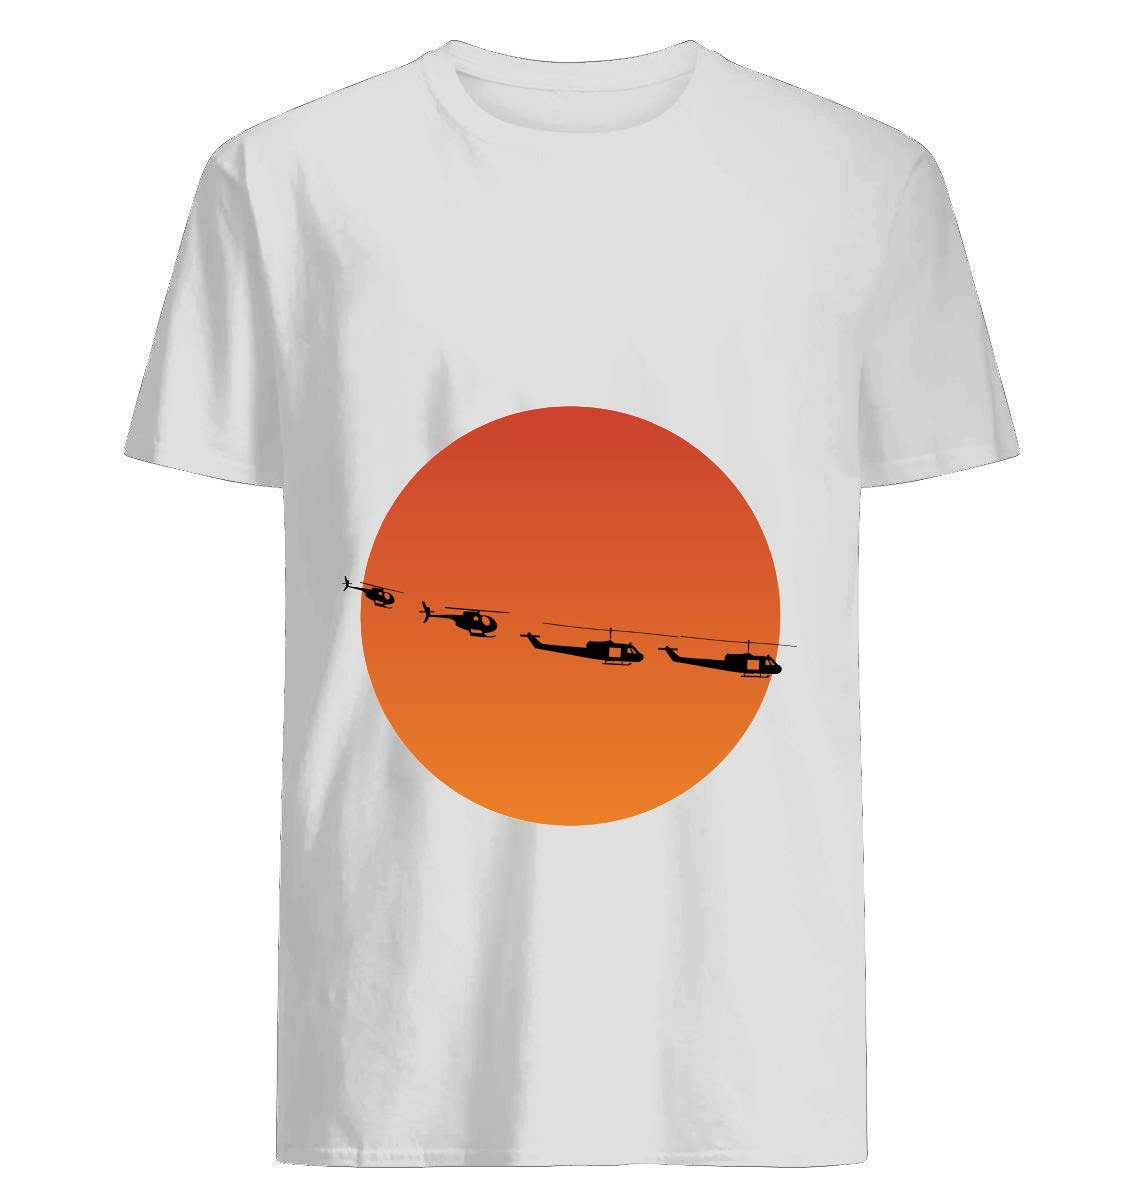 Apocalypse Now By Burro 72 T Shirt For Unisex